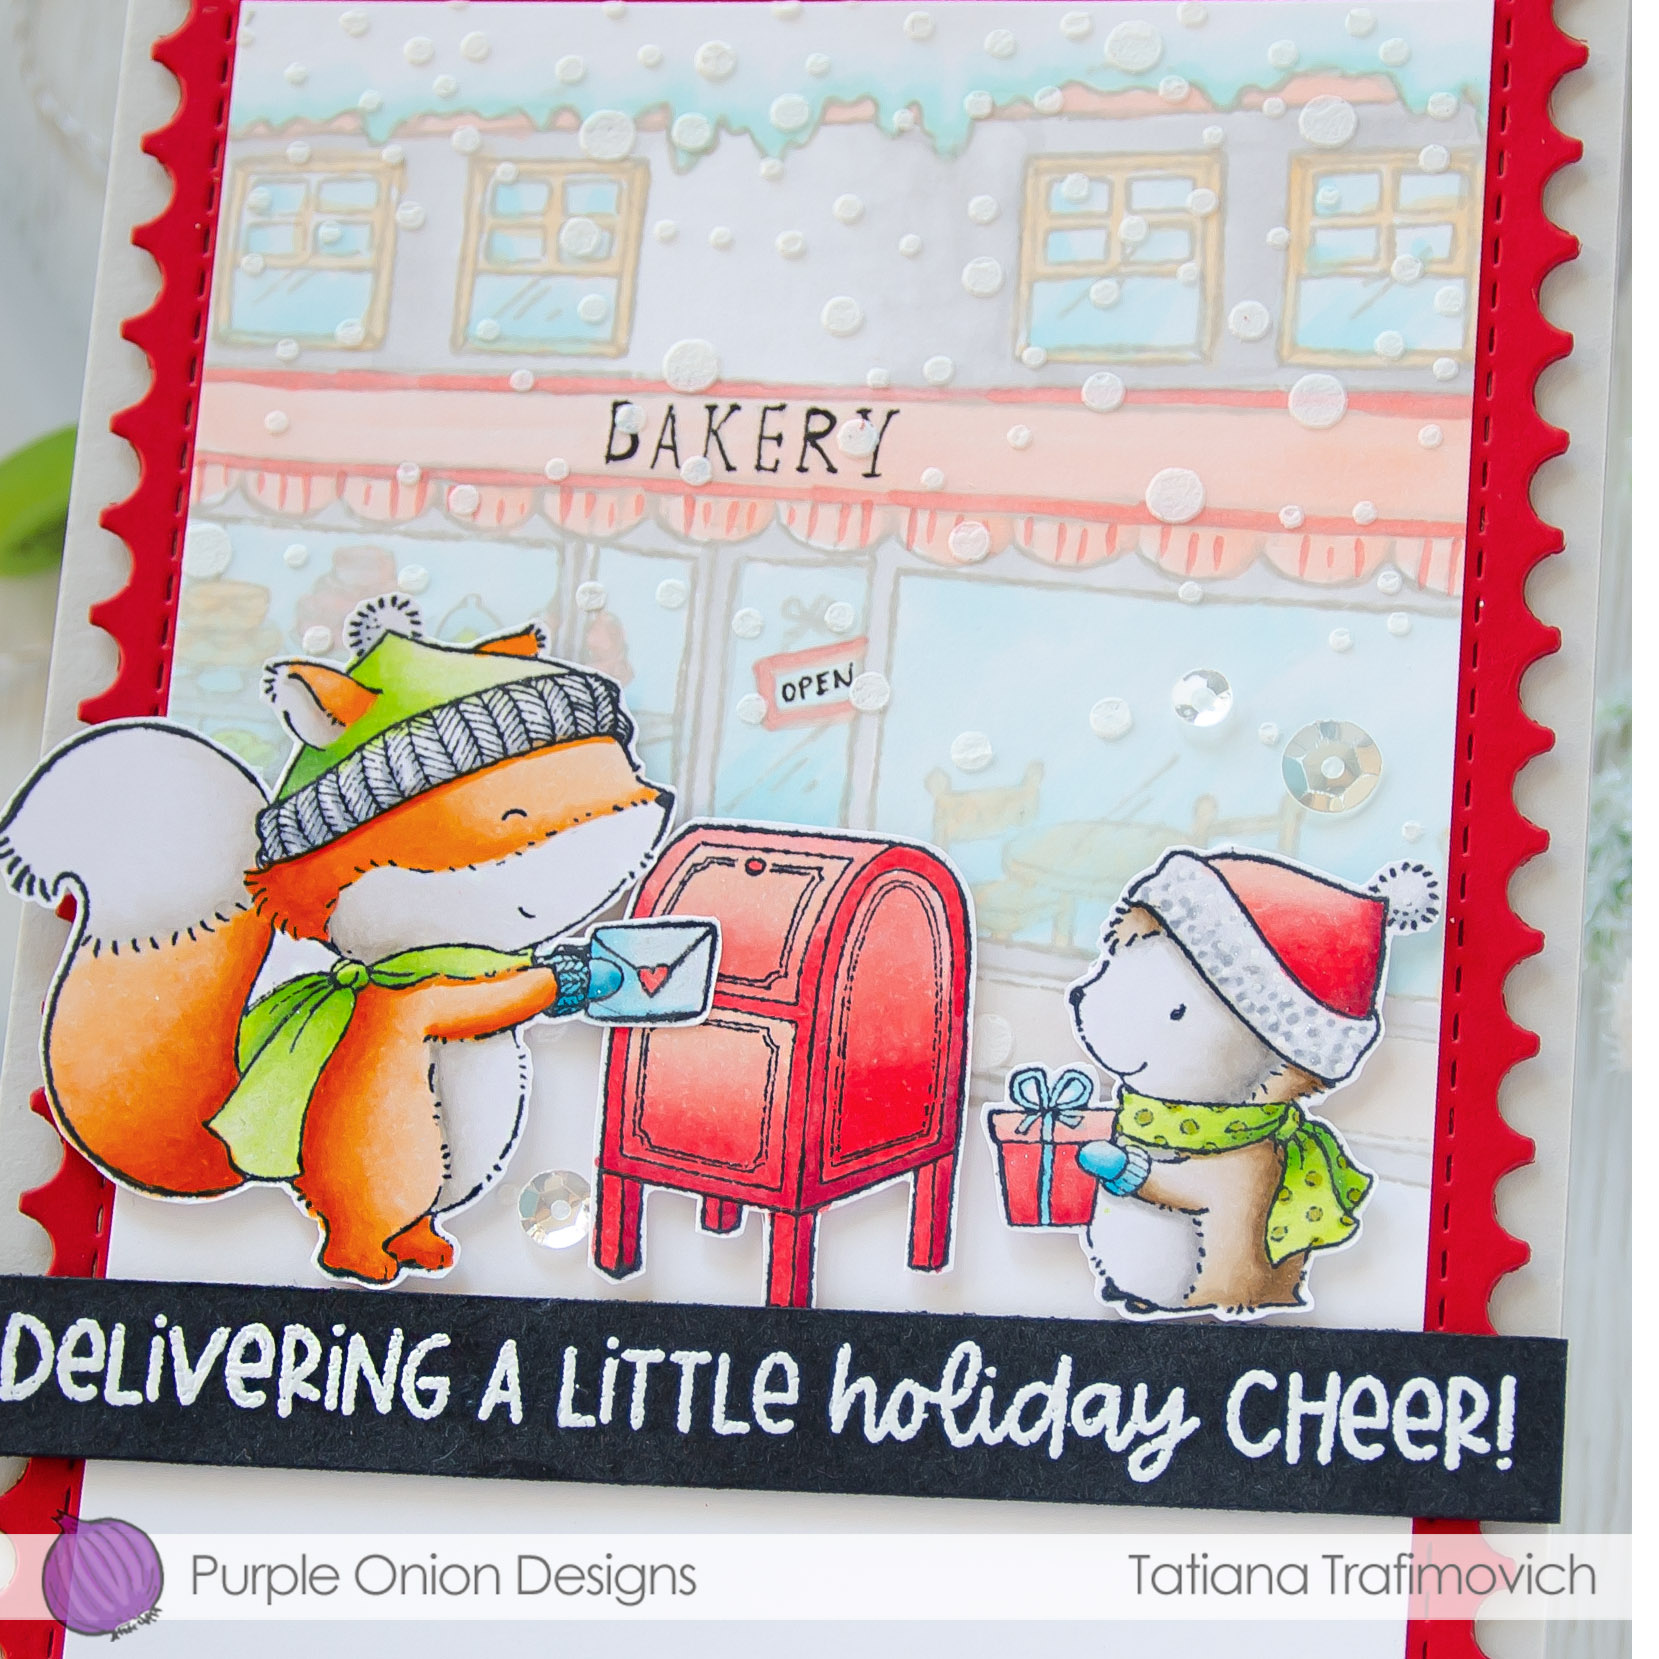 Delivering A Little Holiday Cheer! #handmade card by Tatiana Trafimovich #tatianacraftandart - stamps by Purple Onion Designs